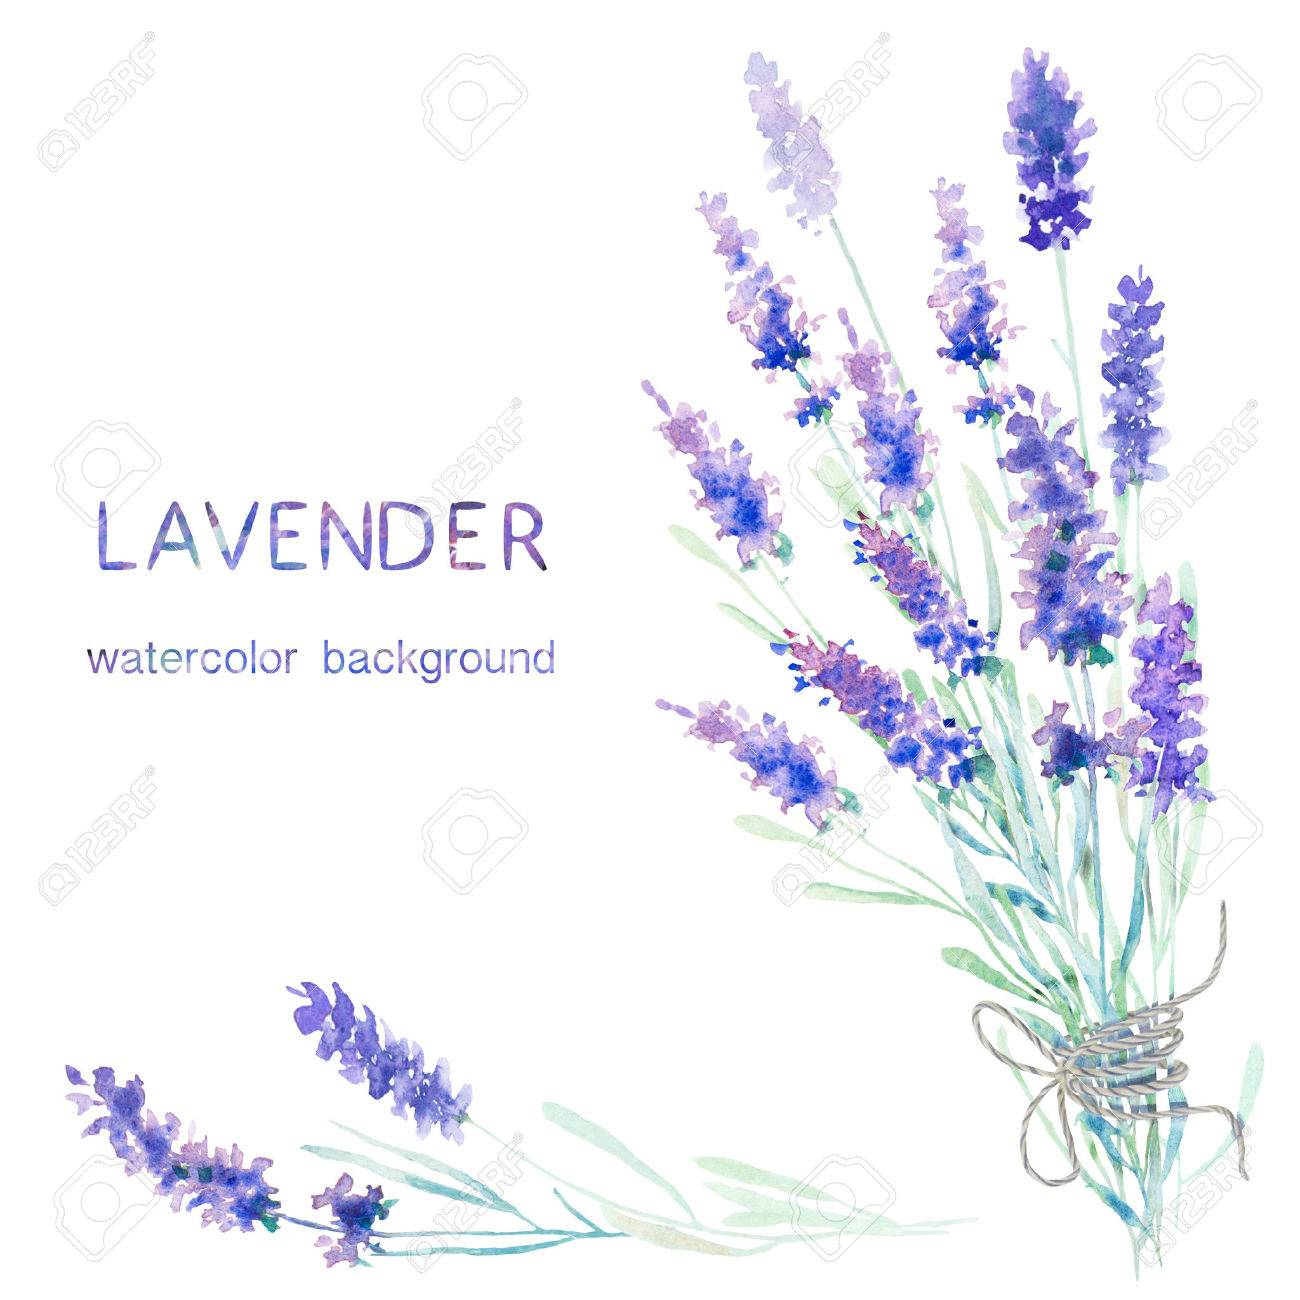 Watercolor lavender background. Card, greeting cards, invitations, and other printing projects template. Watercolor illustration. - 51500657